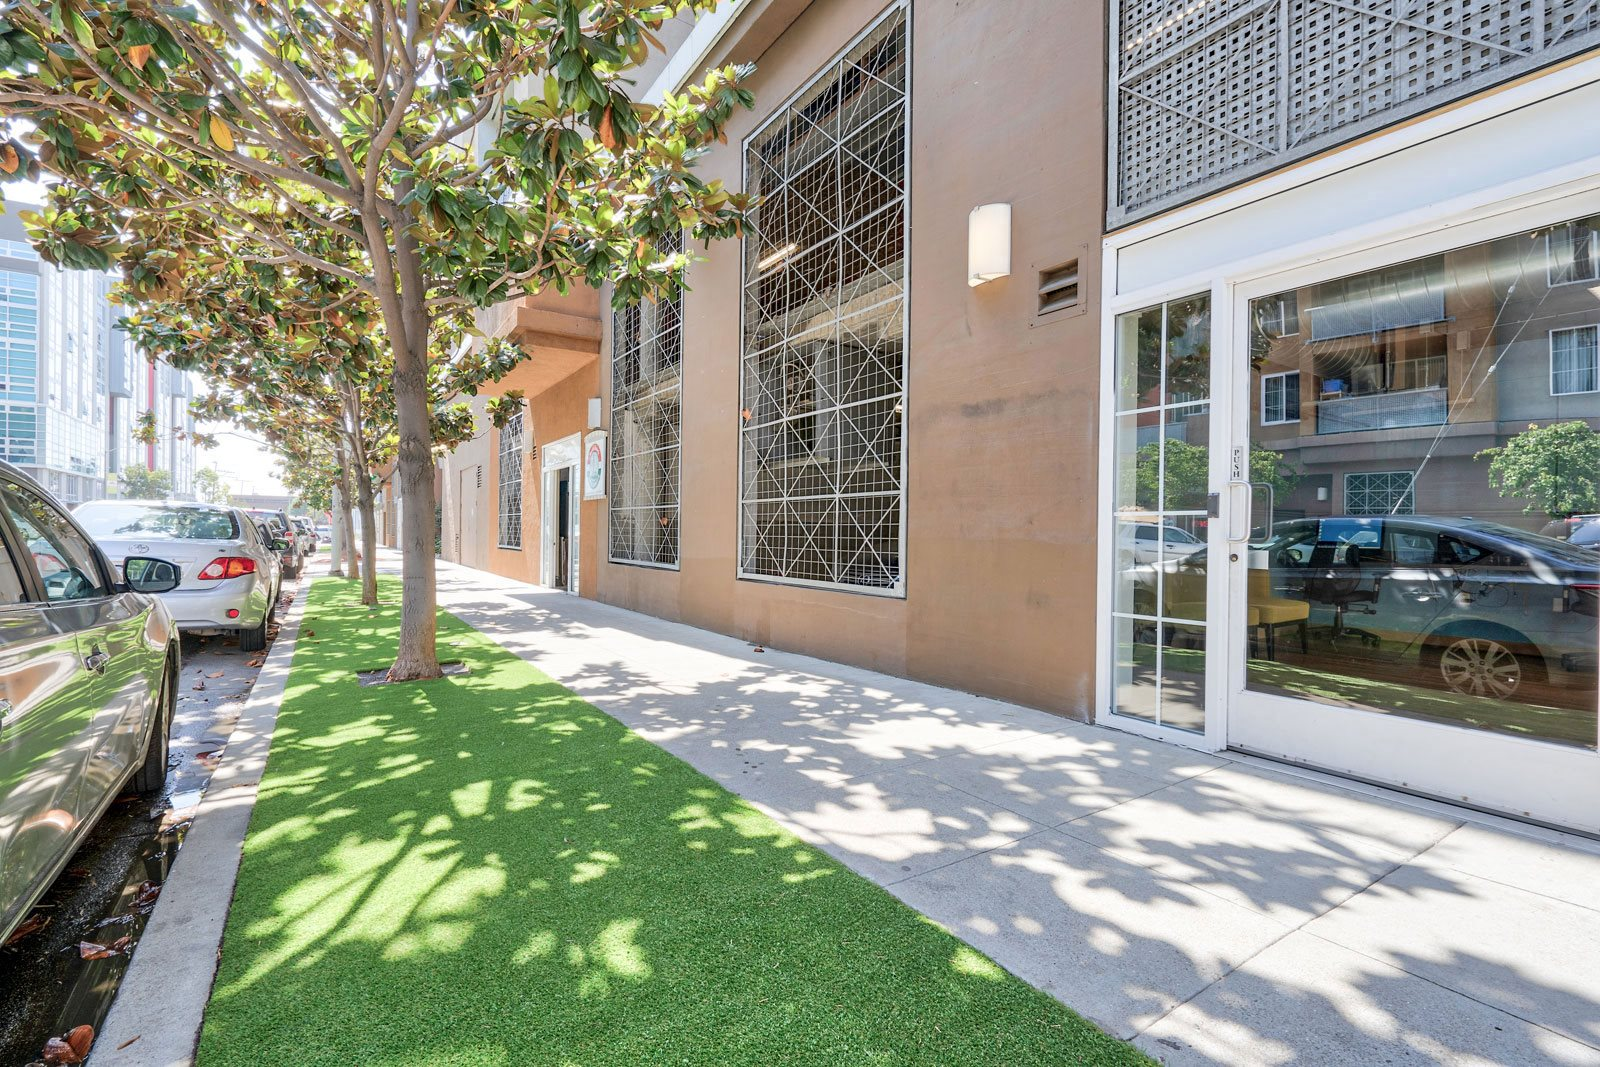 Pet-Friendly Community with Turf Area at Allegro at Jack London Square, 240 3rd Street, CA